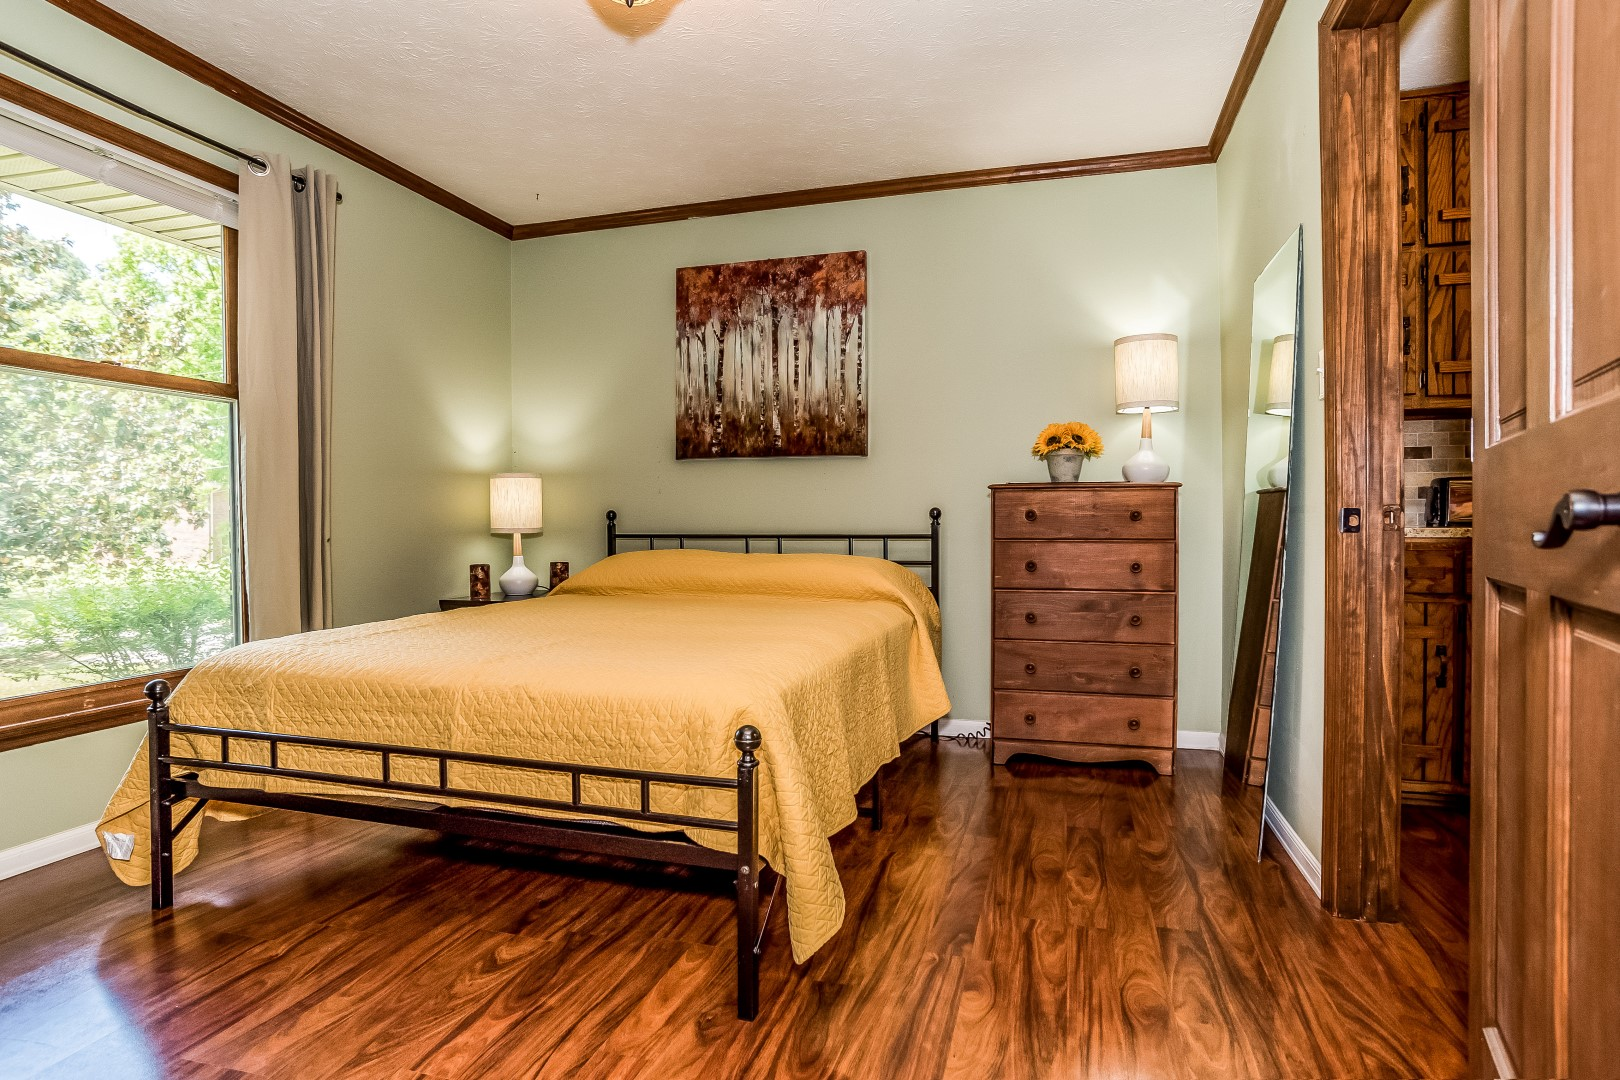 pine trail beautiful serene private fully furnished brick ranch style home on 4 5 acres with. Black Bedroom Furniture Sets. Home Design Ideas